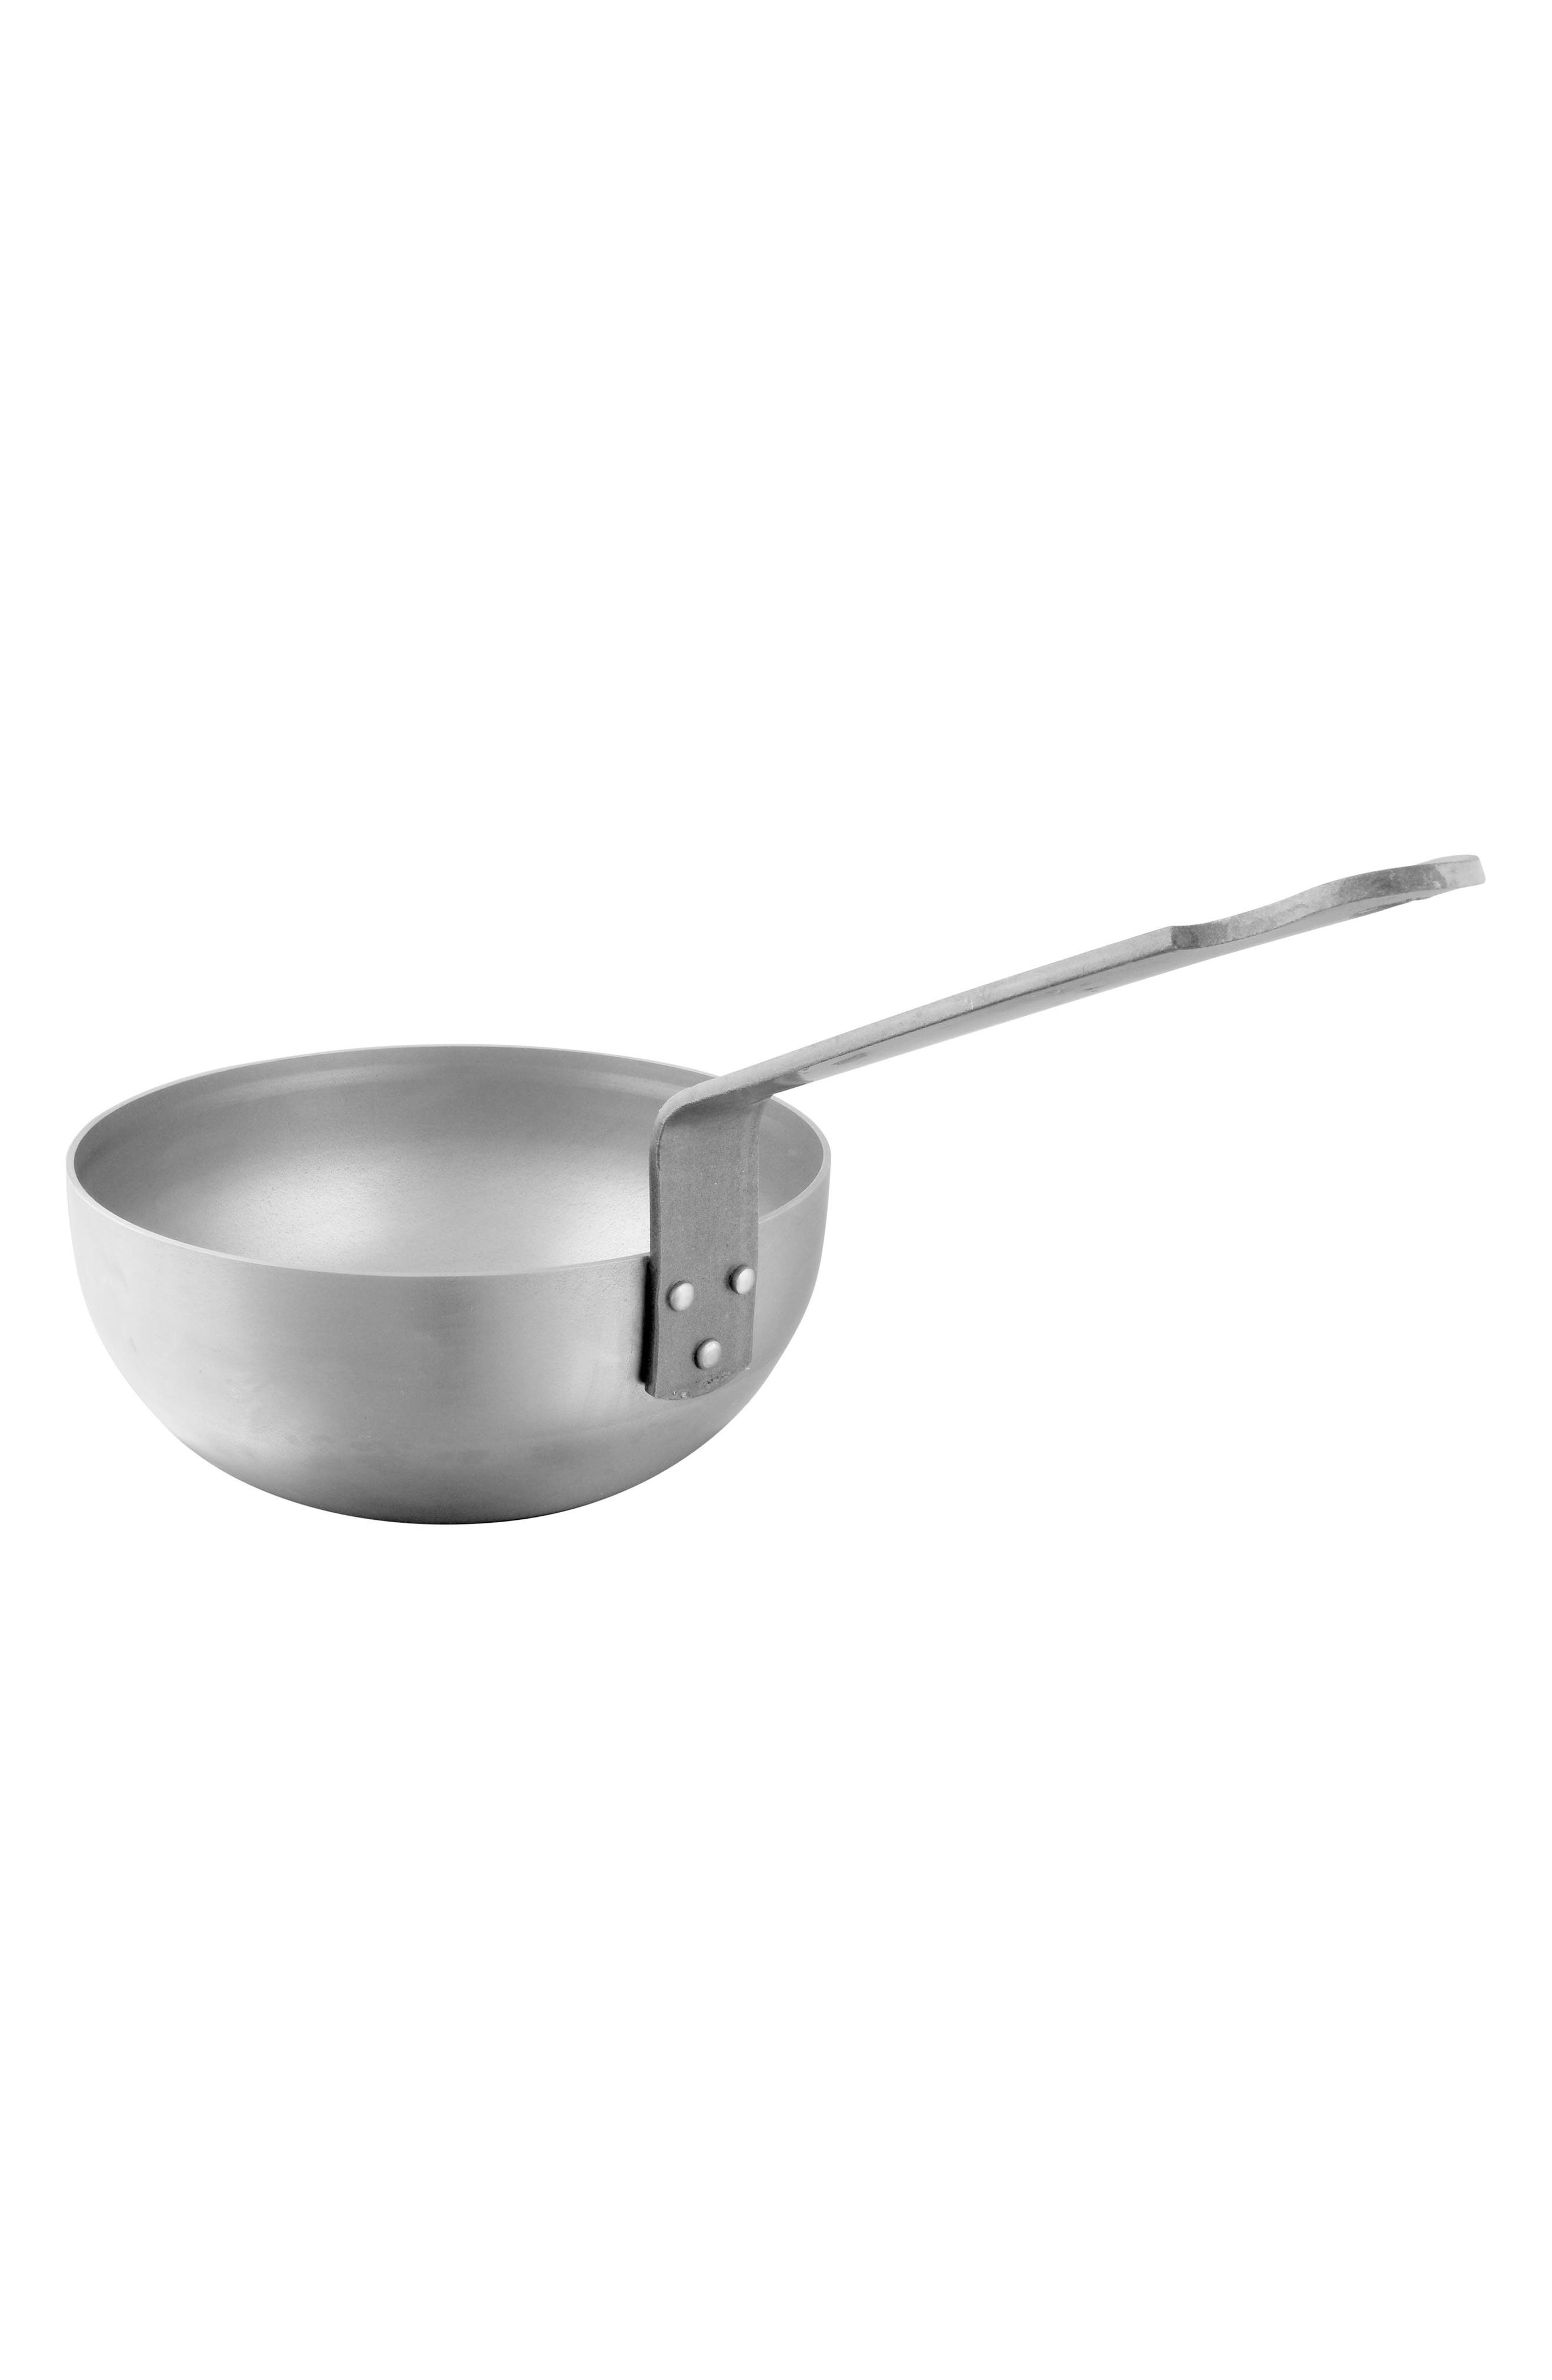 Main Image - Mauviel M'steel Carbon Steel Splayed Curved Sauté Pan